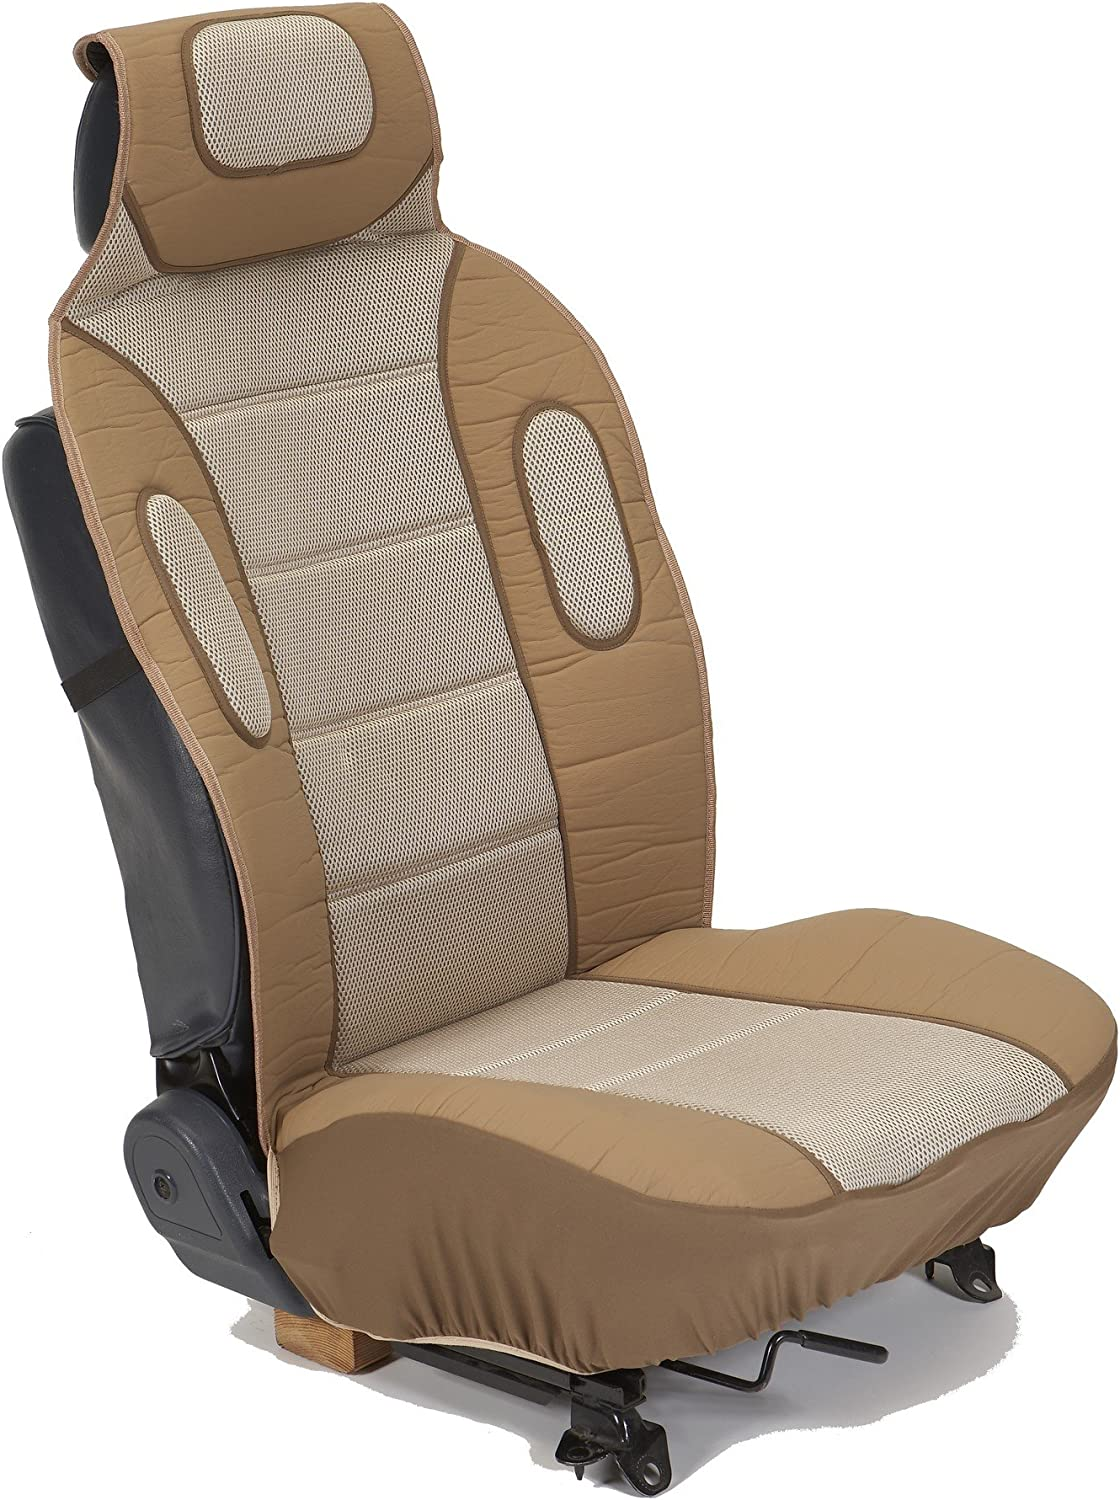 Eurow Sideless Sport Mesh Seat Cover (Tan, 2-Pack)